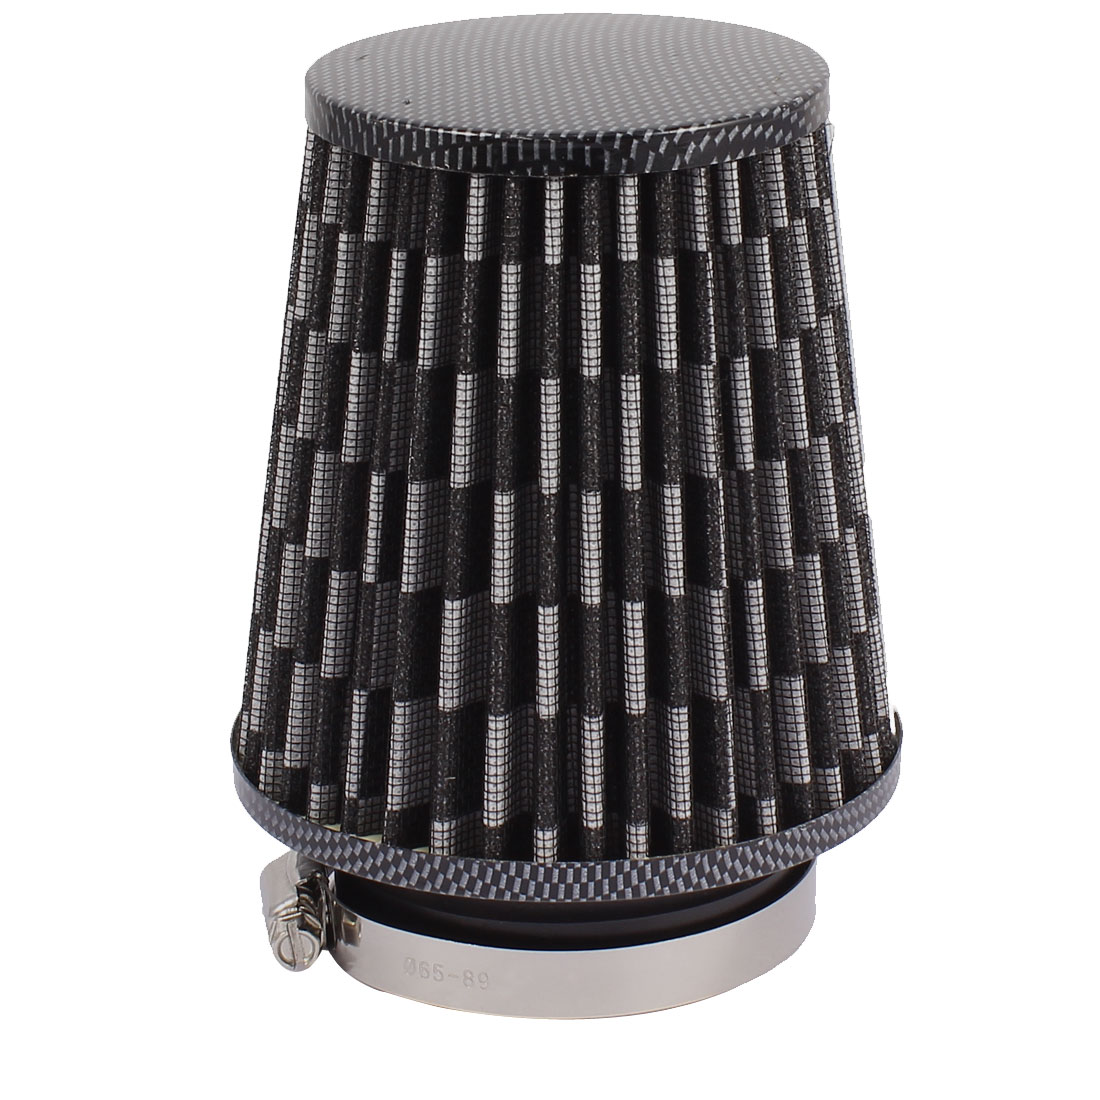 "Auto Car Black White Fiber Mesh Cone 76mm 3"" Inlet Dia Conical Air Filter"